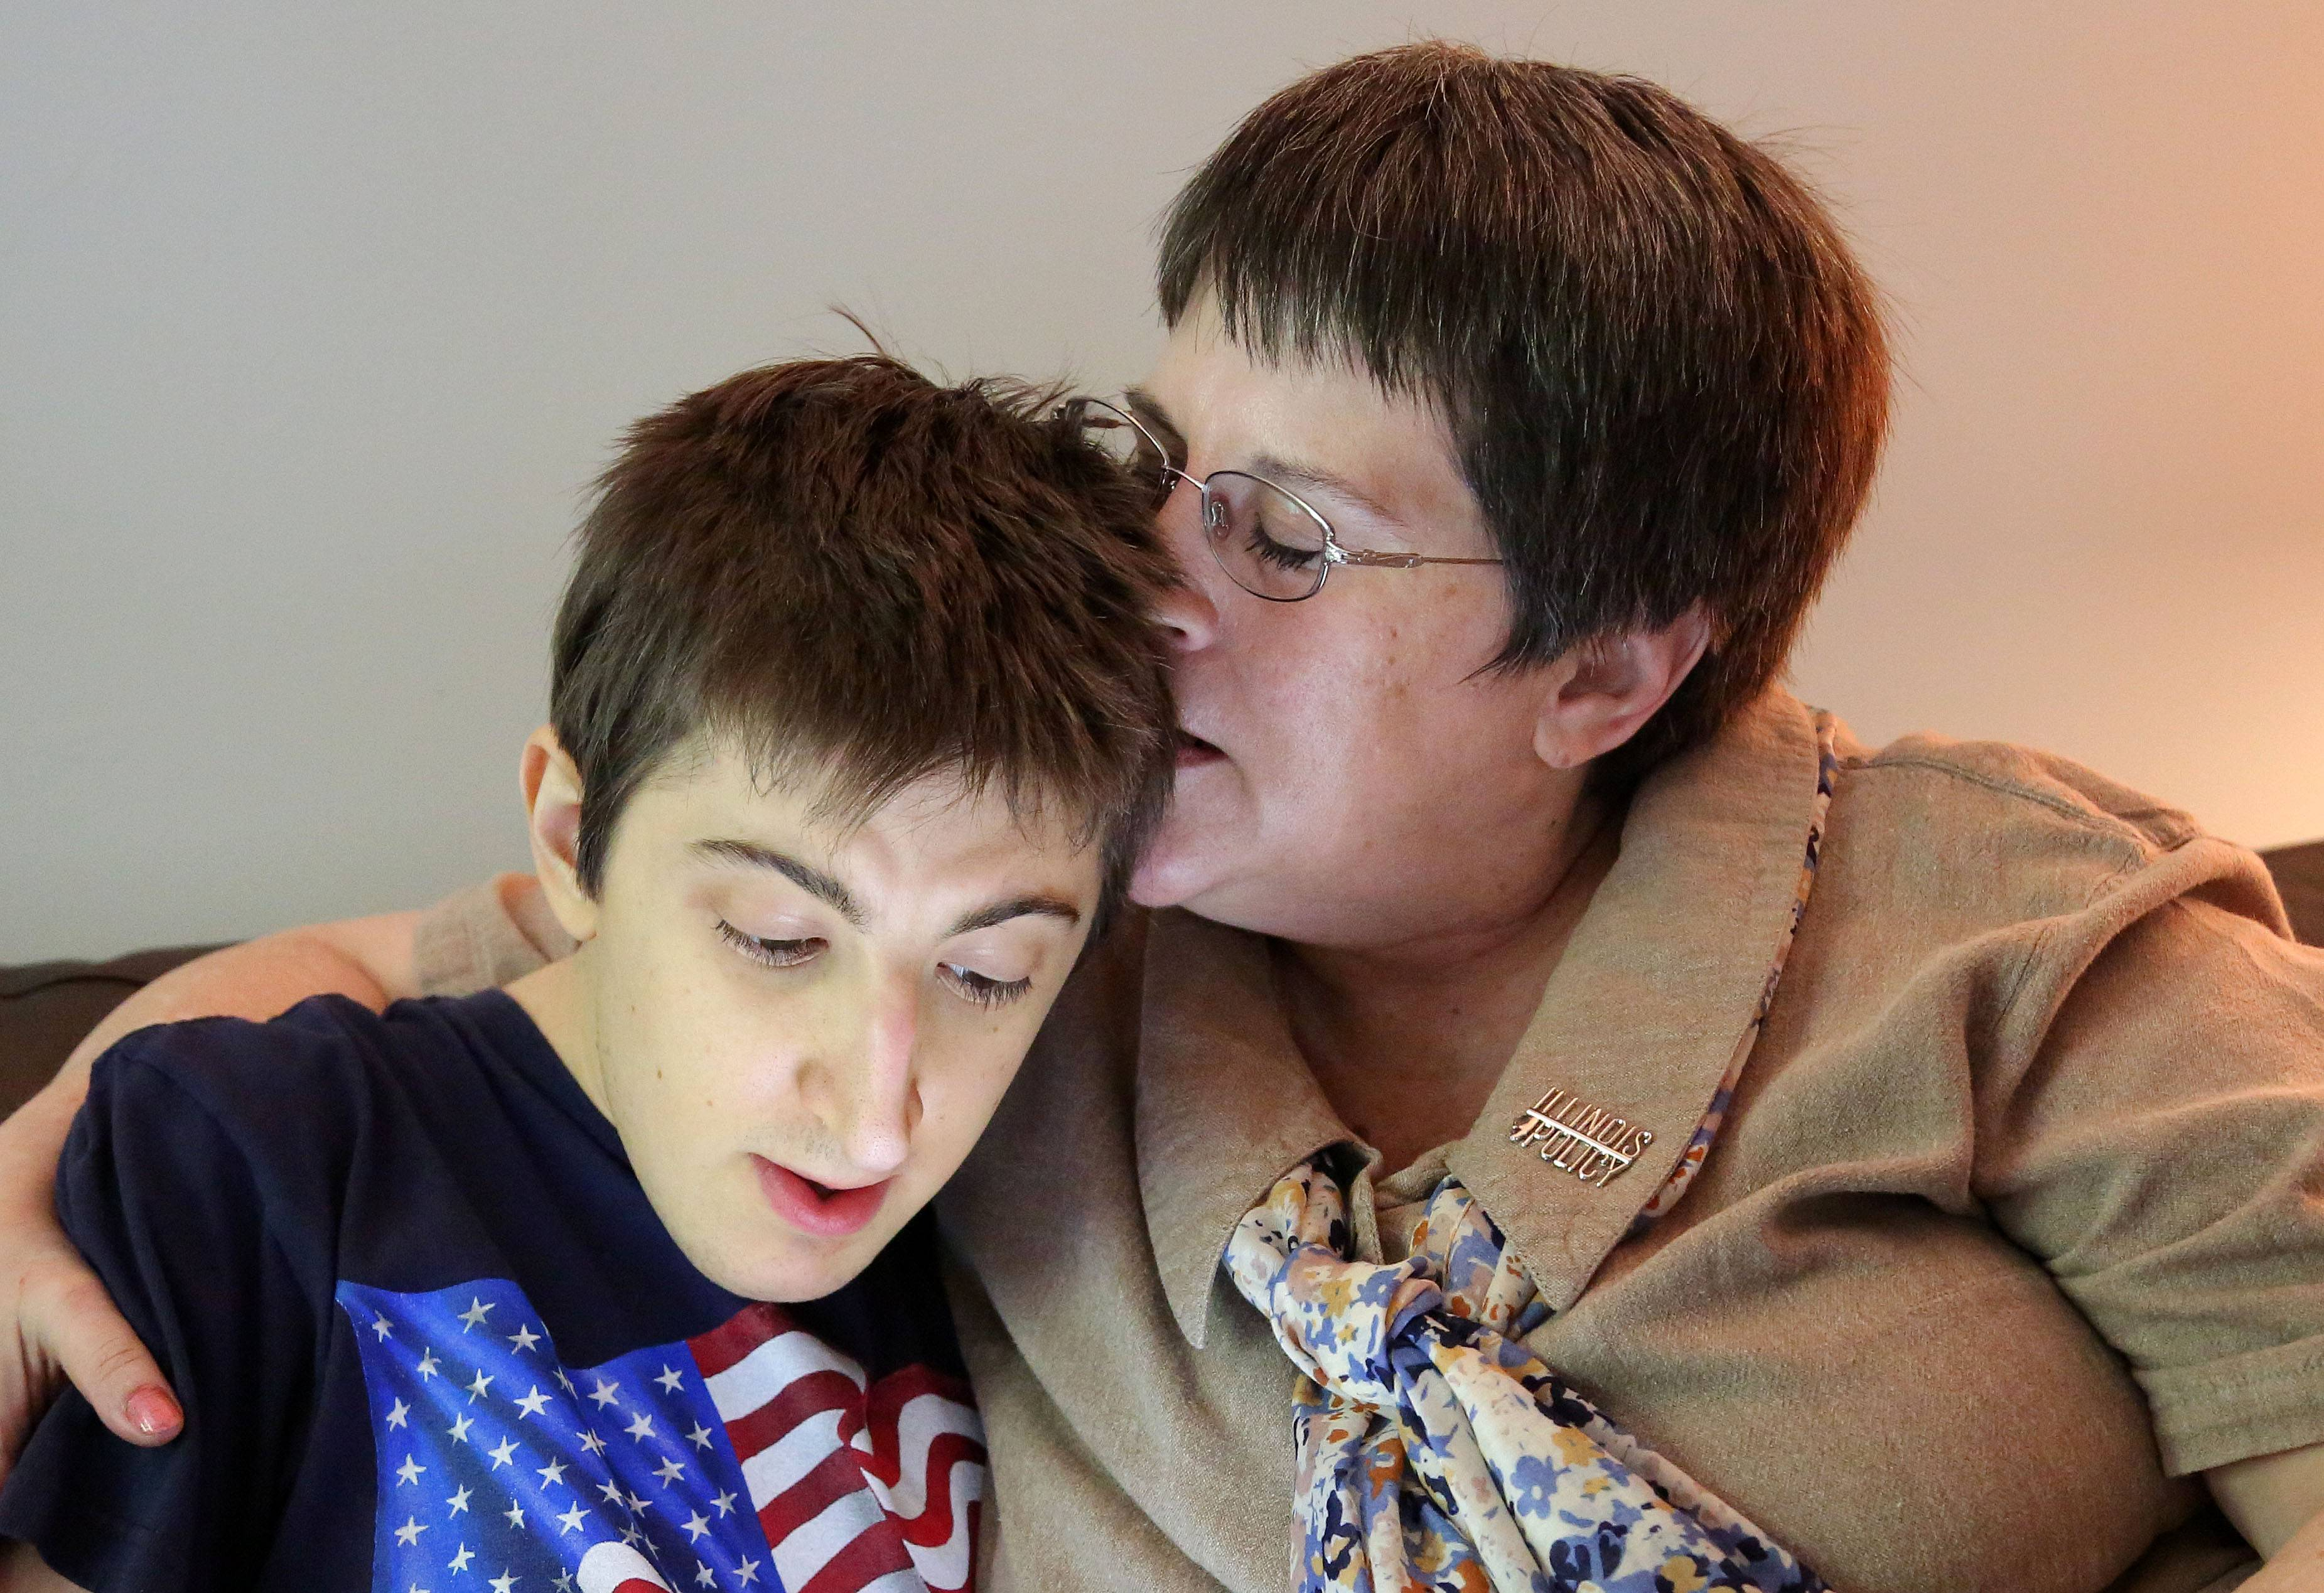 Pam Harris kisses 25-year-old son Josh at their Winthrop Harbor home after the U.S. Supreme Court ruled in her favor. Harris wanted to avoid having to pay mandatory dues to the union that represents similar Illinois workers, and she won her yearslong court case Monday.